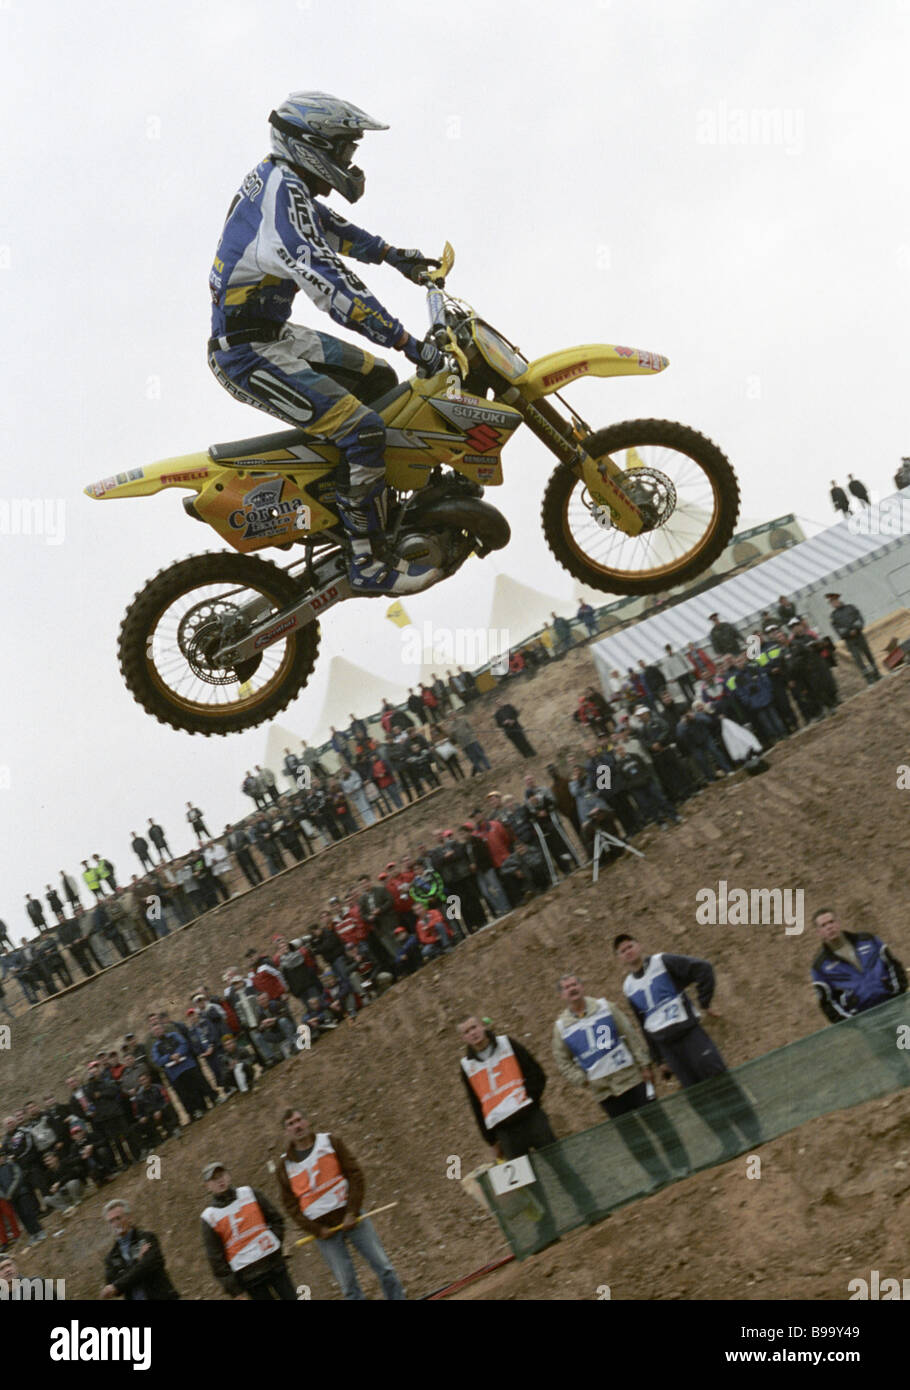 Frenchman Mickael Pichon takes part in finals of motocross championship - Stock Image